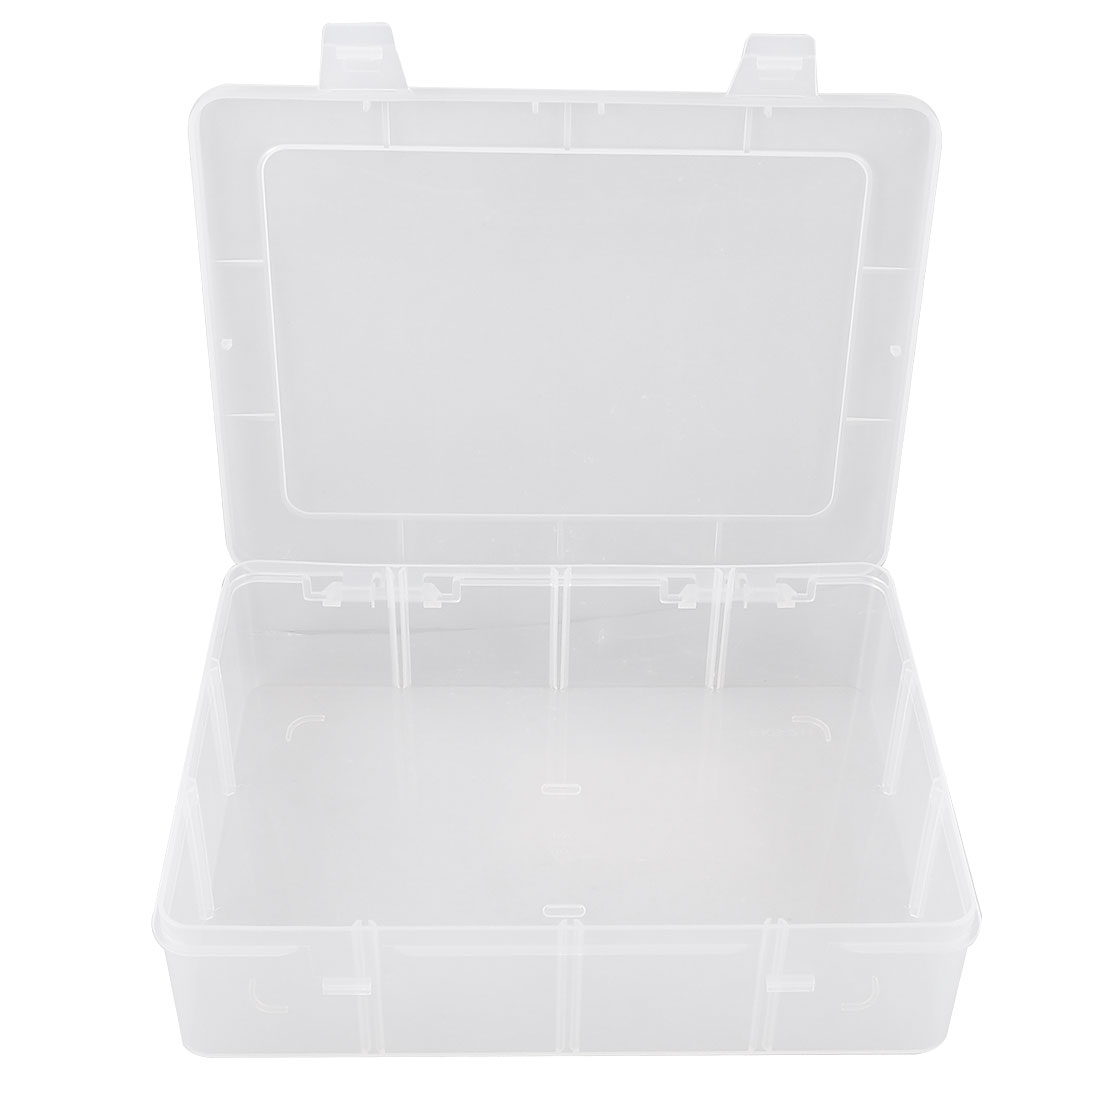 Clear Plastic Electronic Component Storage Case Holder 22.5cm x 16.5cm x 5.5cm